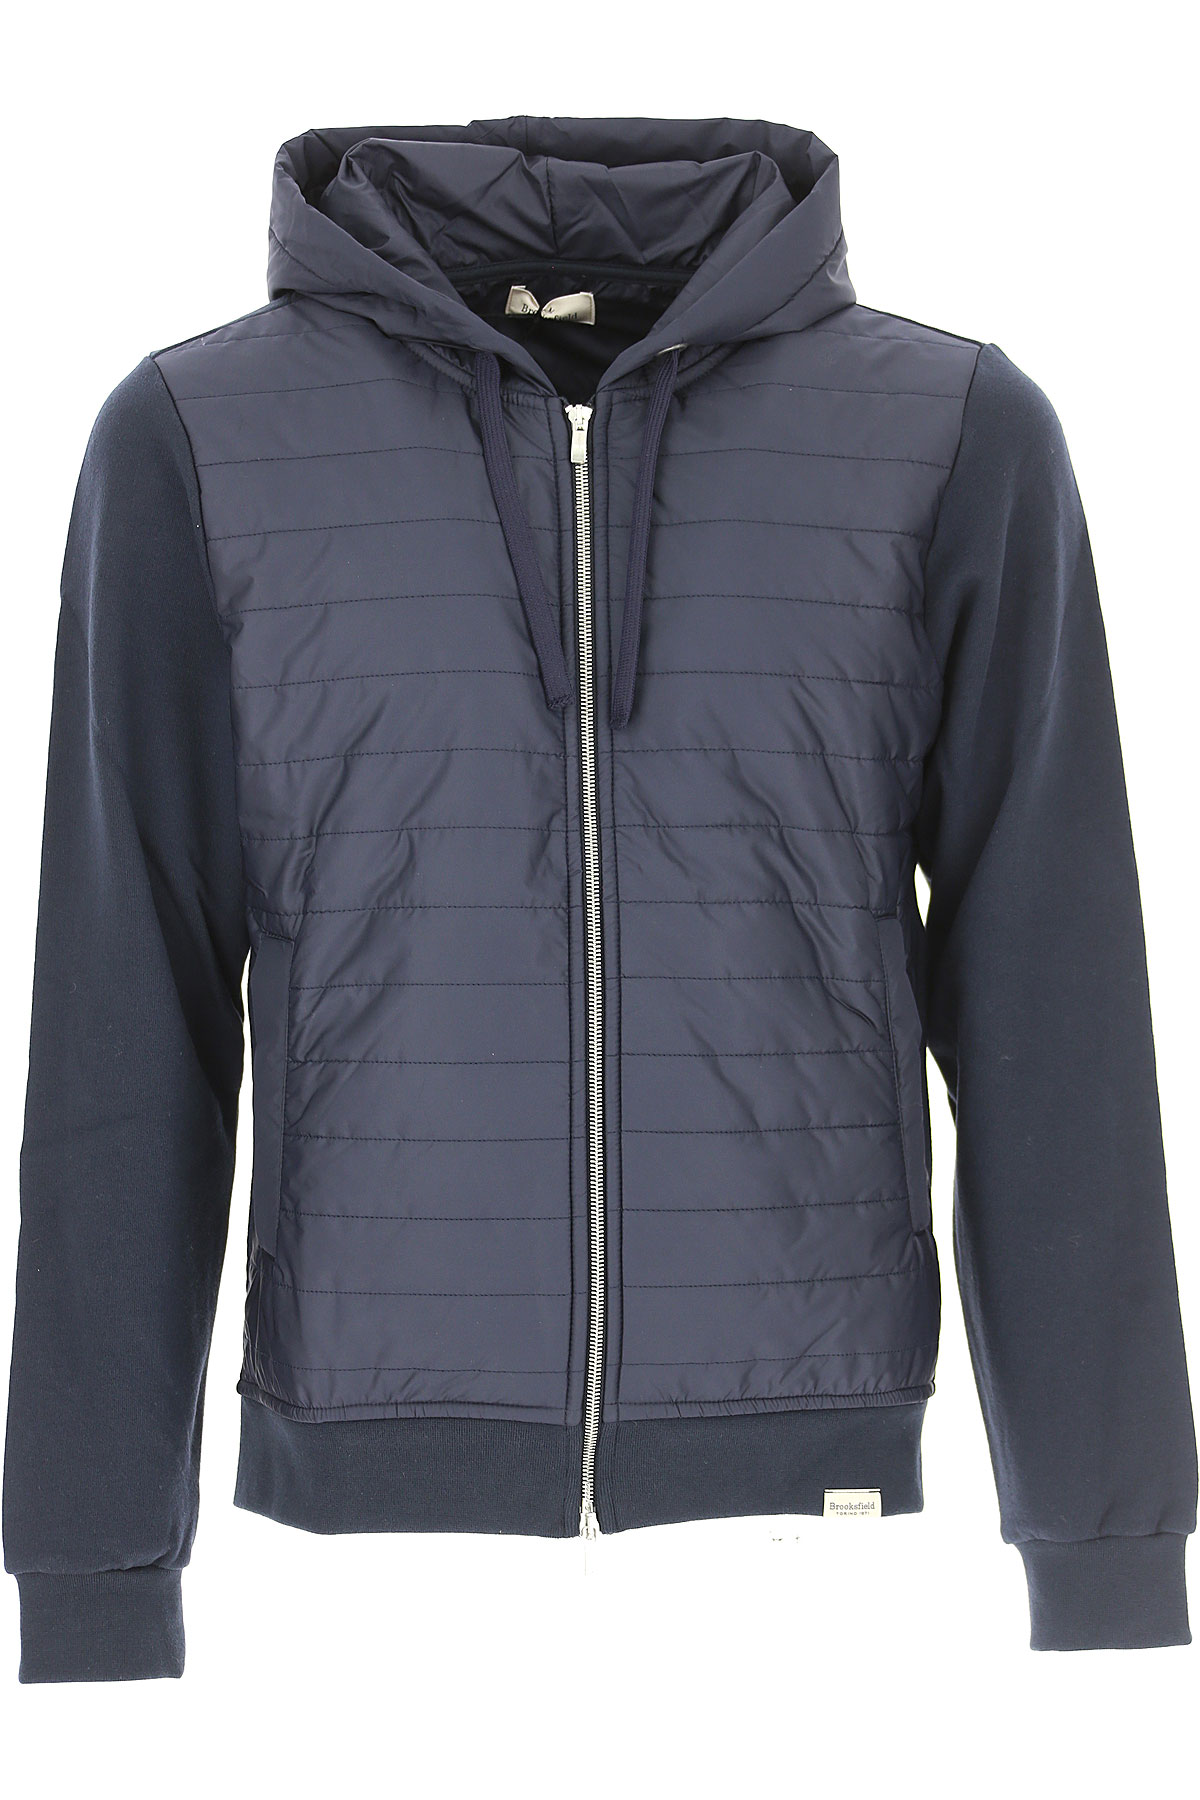 Image of Brooksfield Down Jacket for Men, Puffer Ski Jacket, navy, Cotton, 2017, L XL